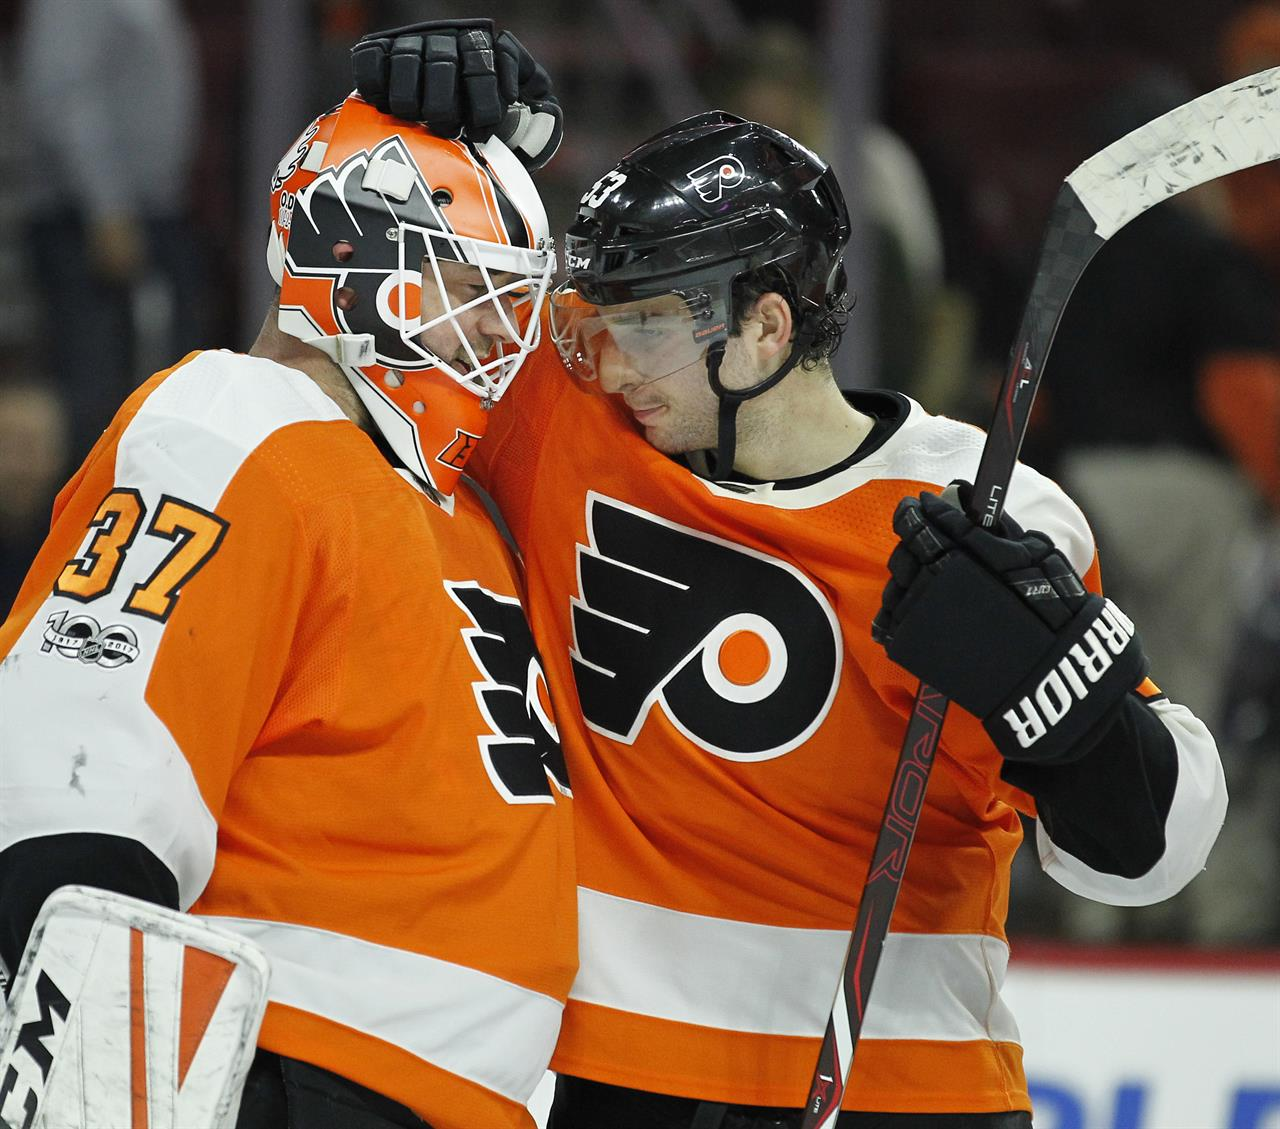 beef54e608a Philadelphia Flyers' Brian Elliott, left and Shayne Gostisbehere celebrate  at the end of the third period of an NHL hockey game against the Toronto  Maple ...